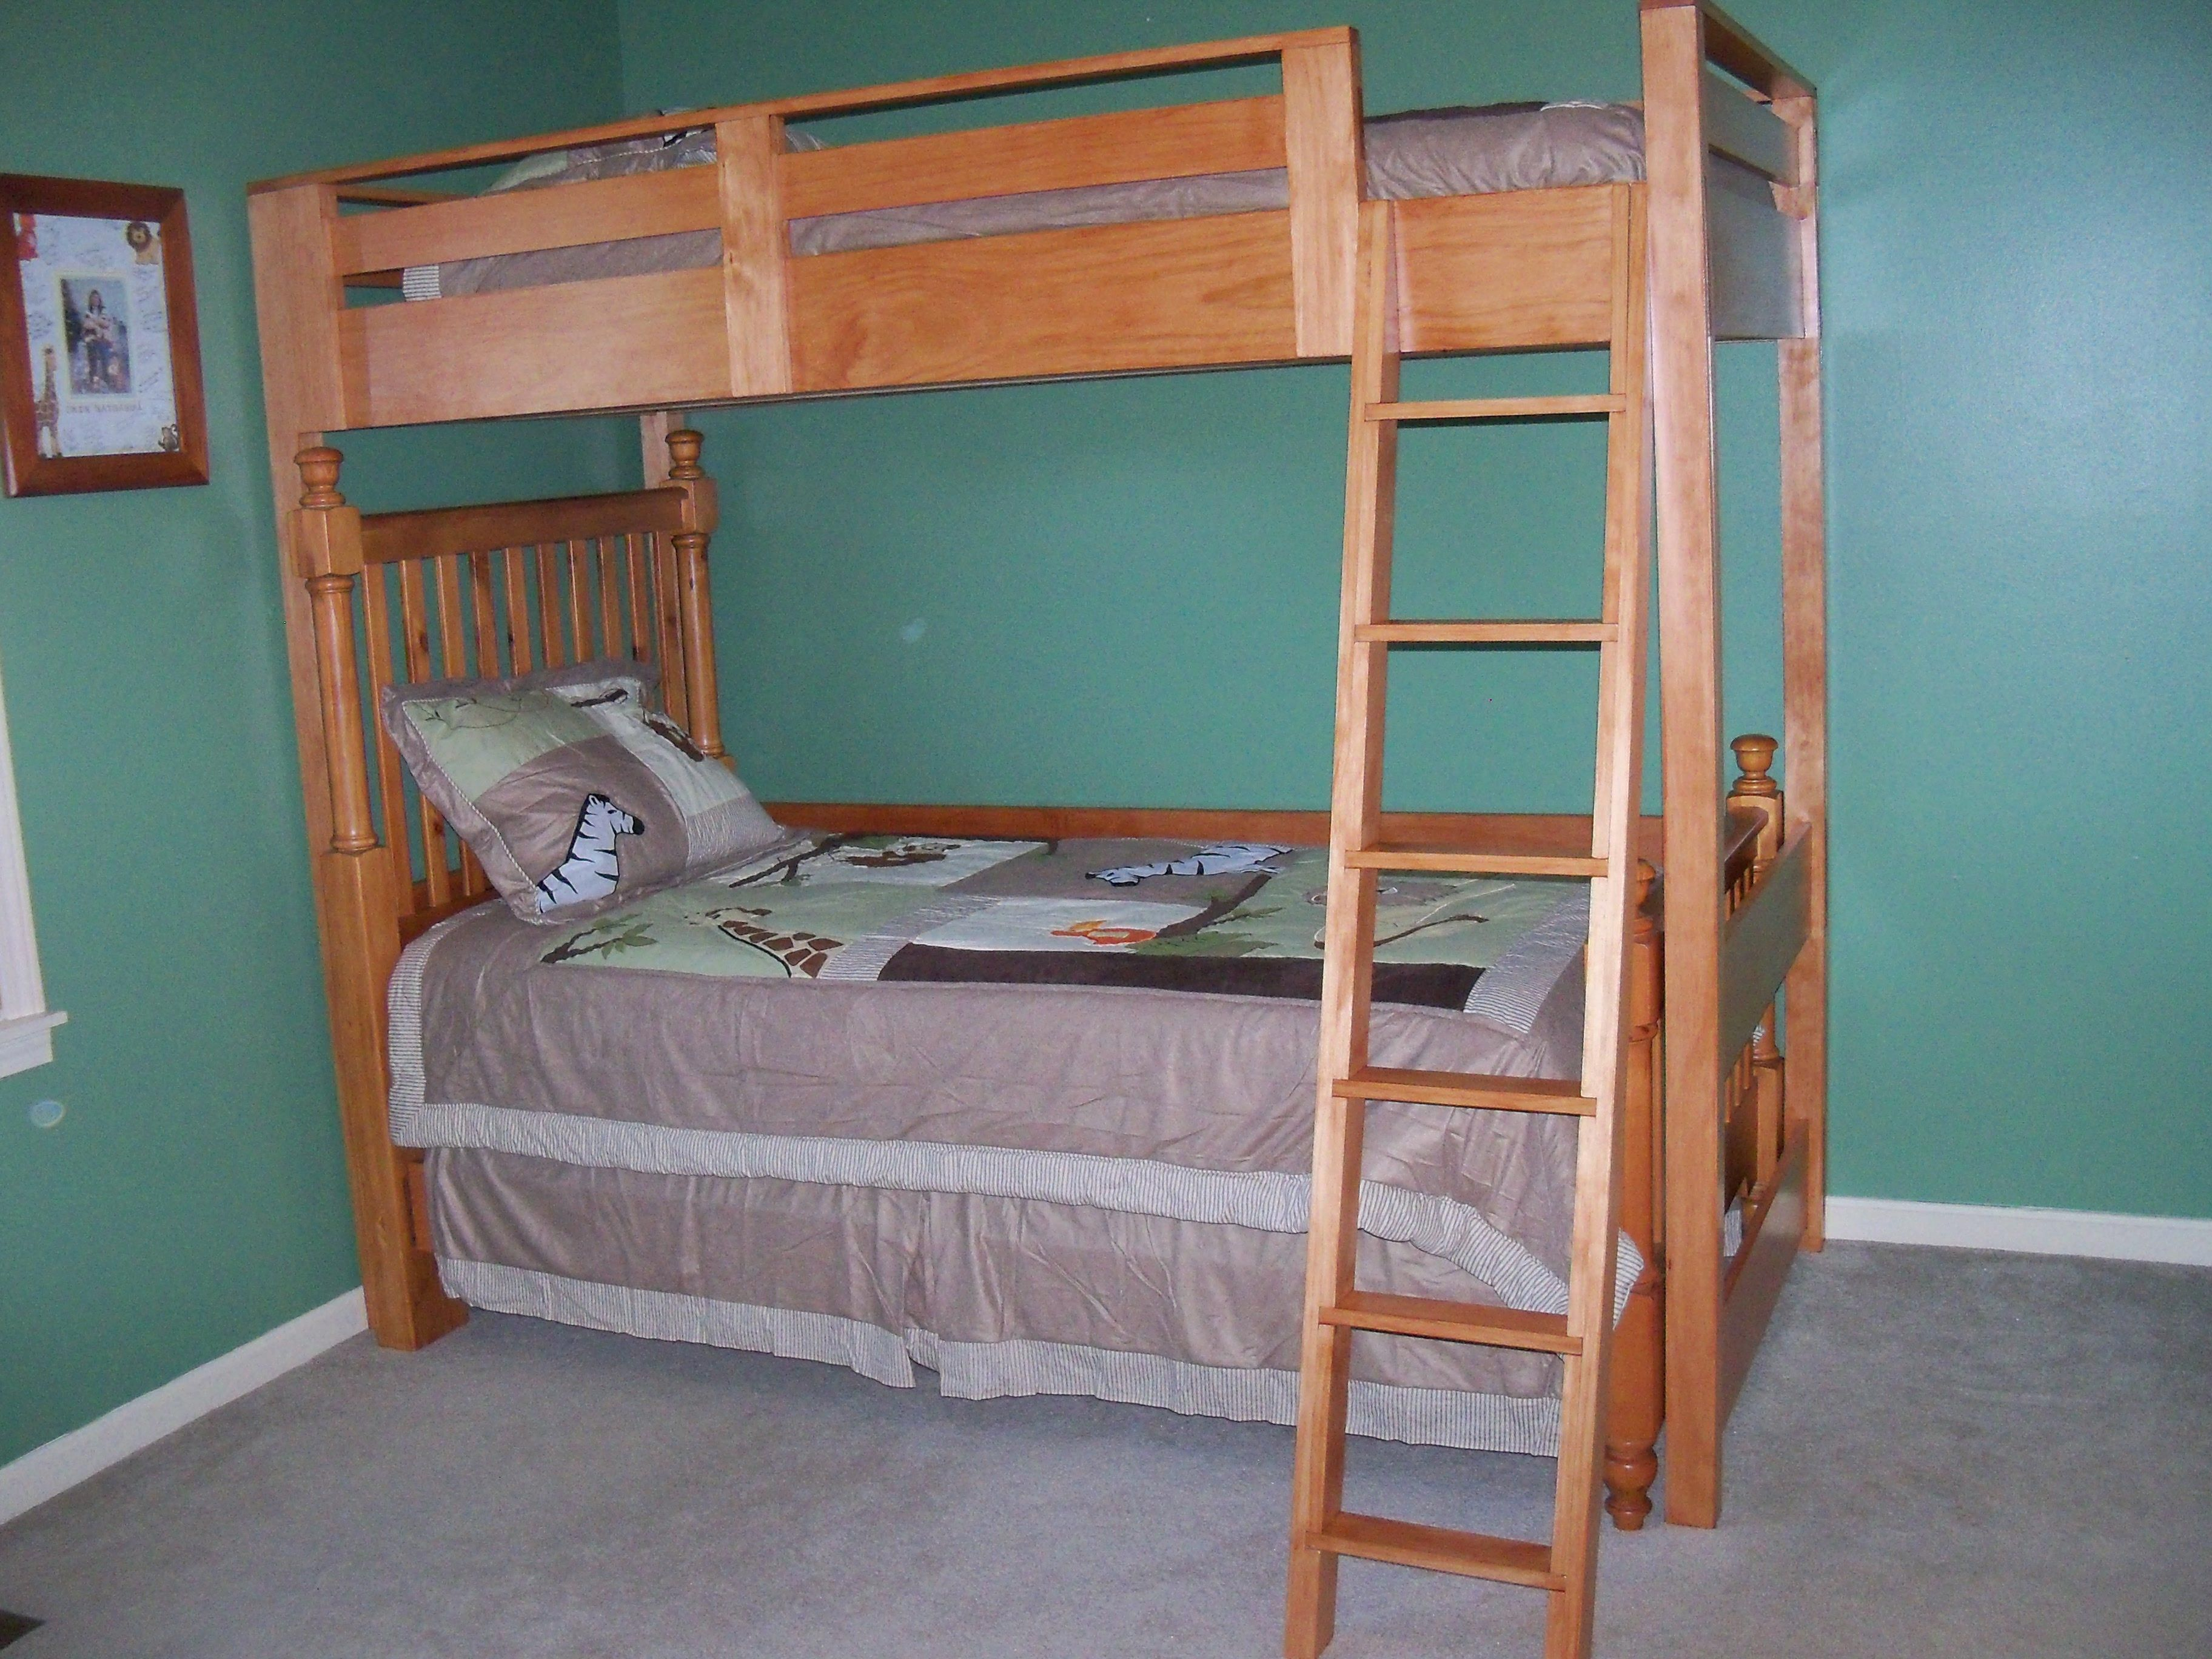 Loft bed with slide building plans  Turning the Loft Bed into a Bunk Bed  Do It Yourself Home Projects